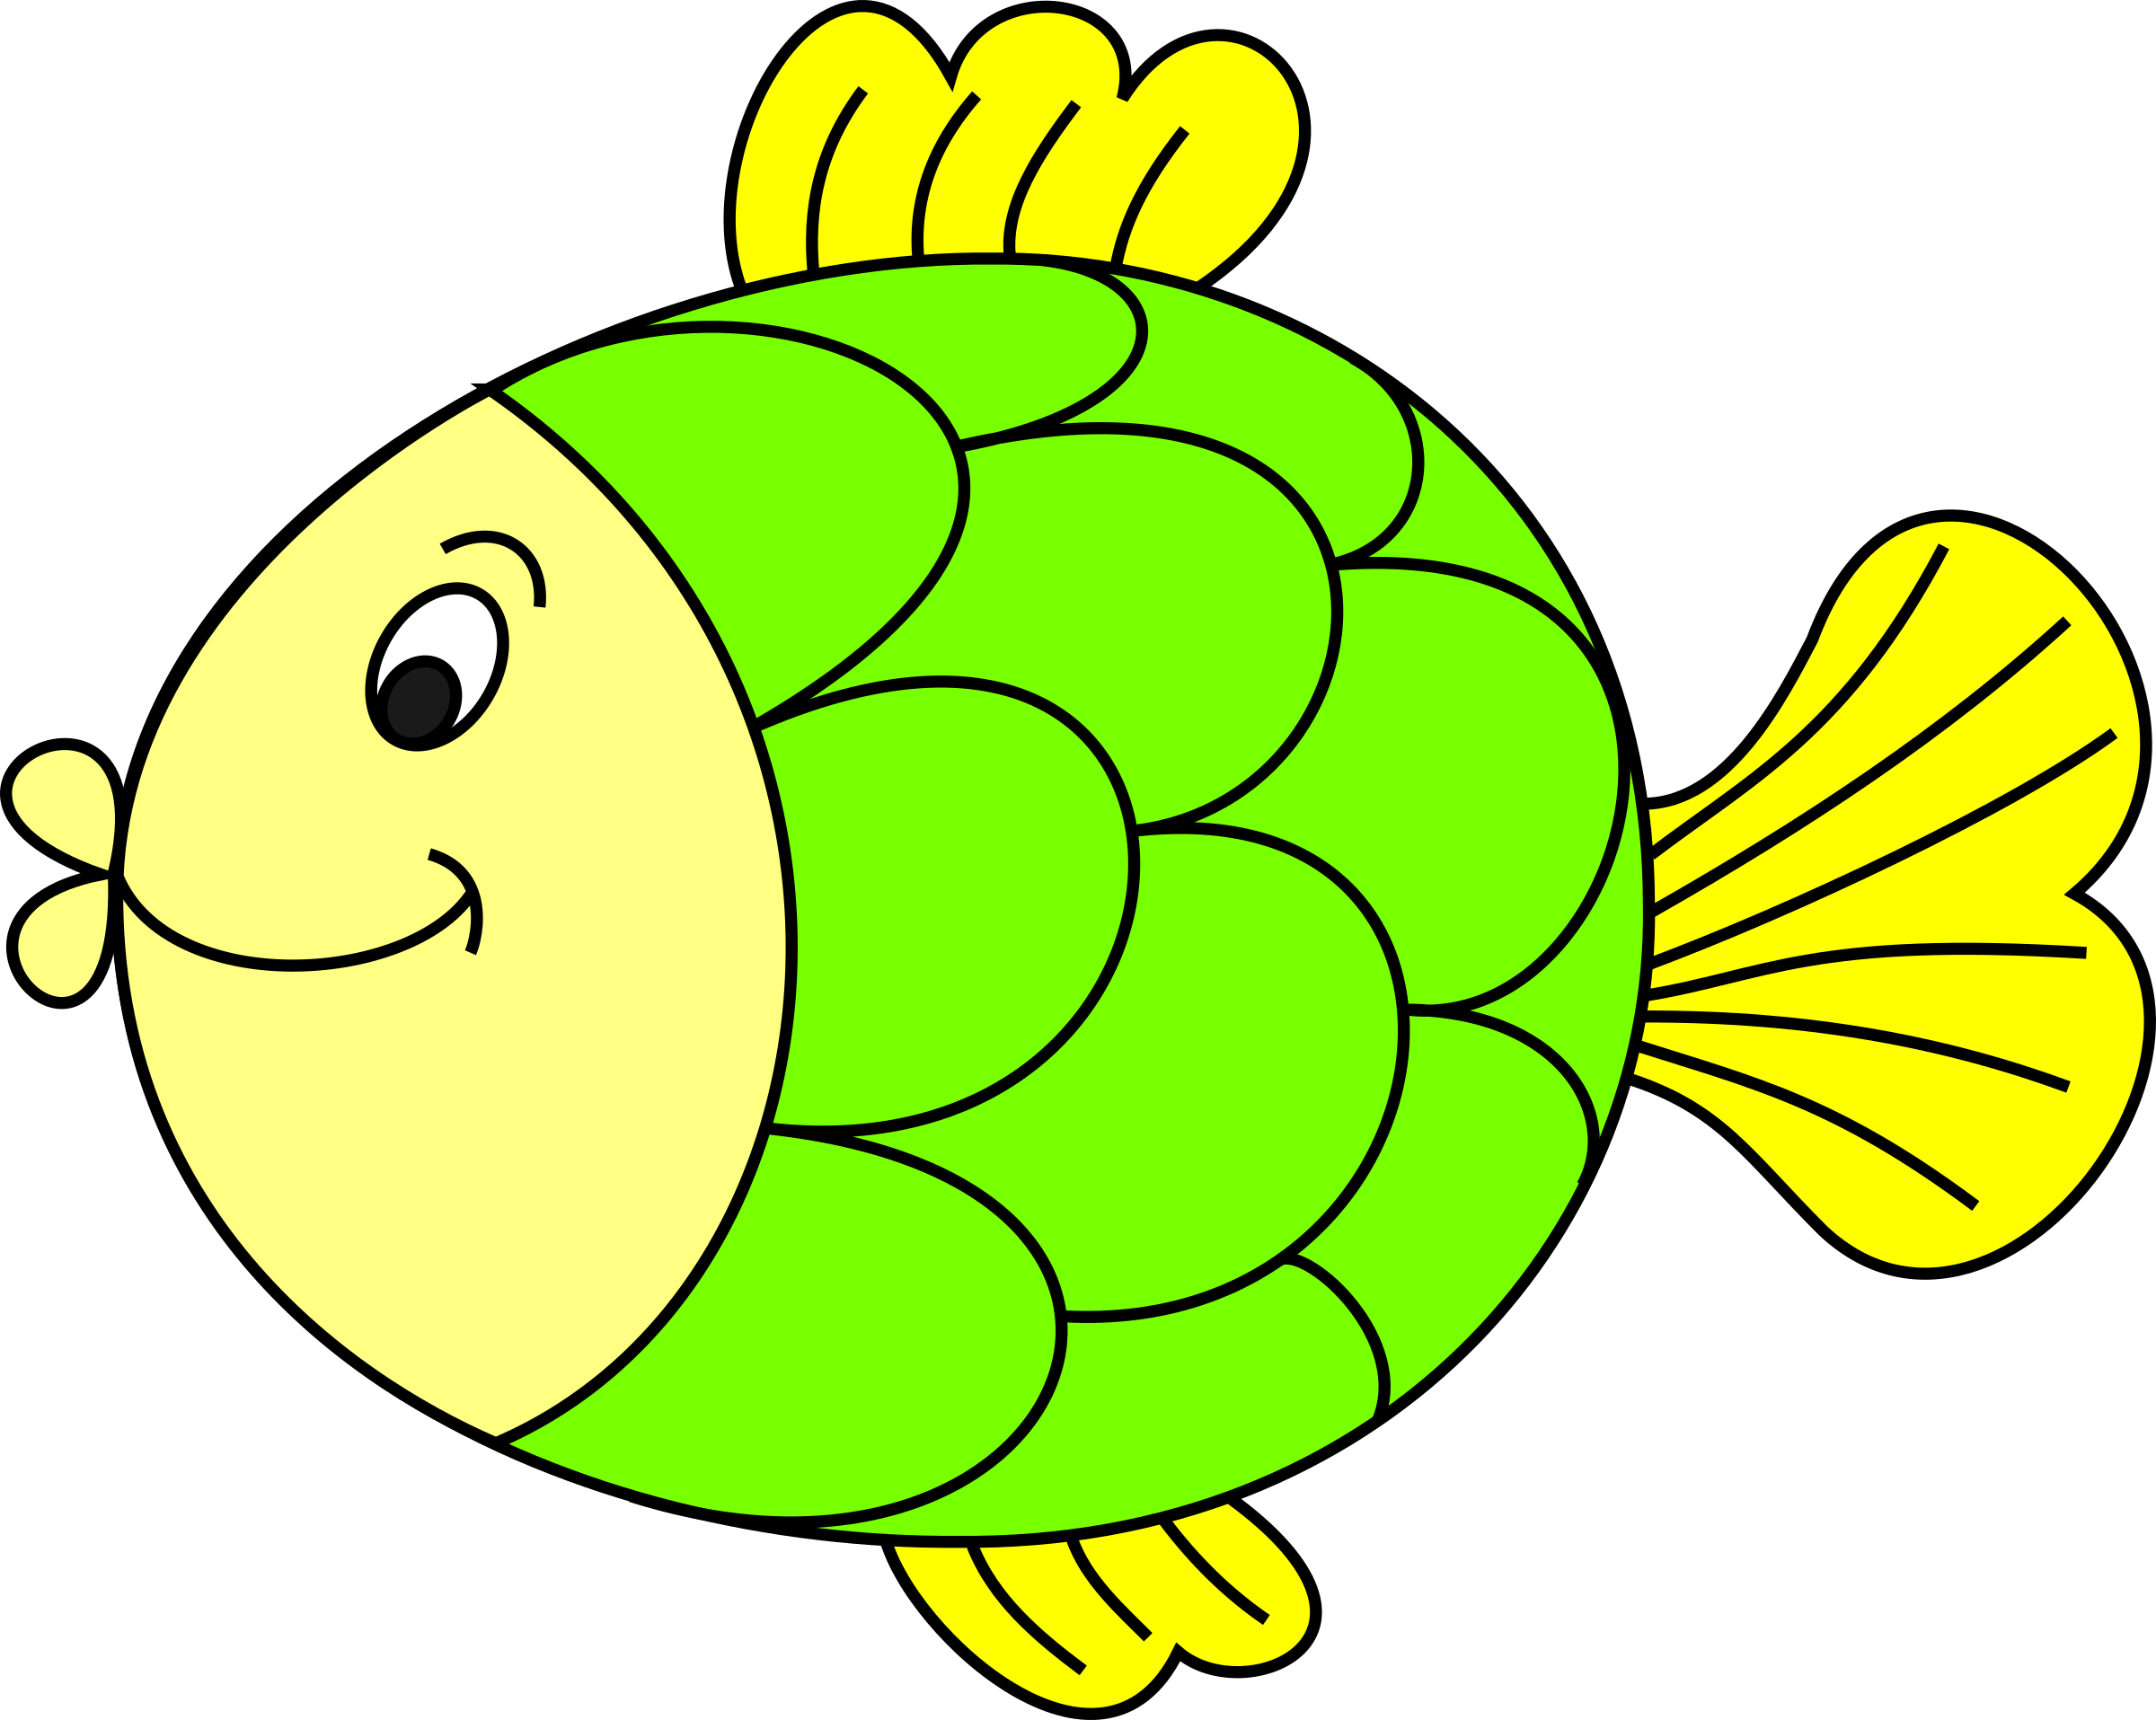 Clipart for fish graphic library stock Clipart - Fish-coloured graphic library stock